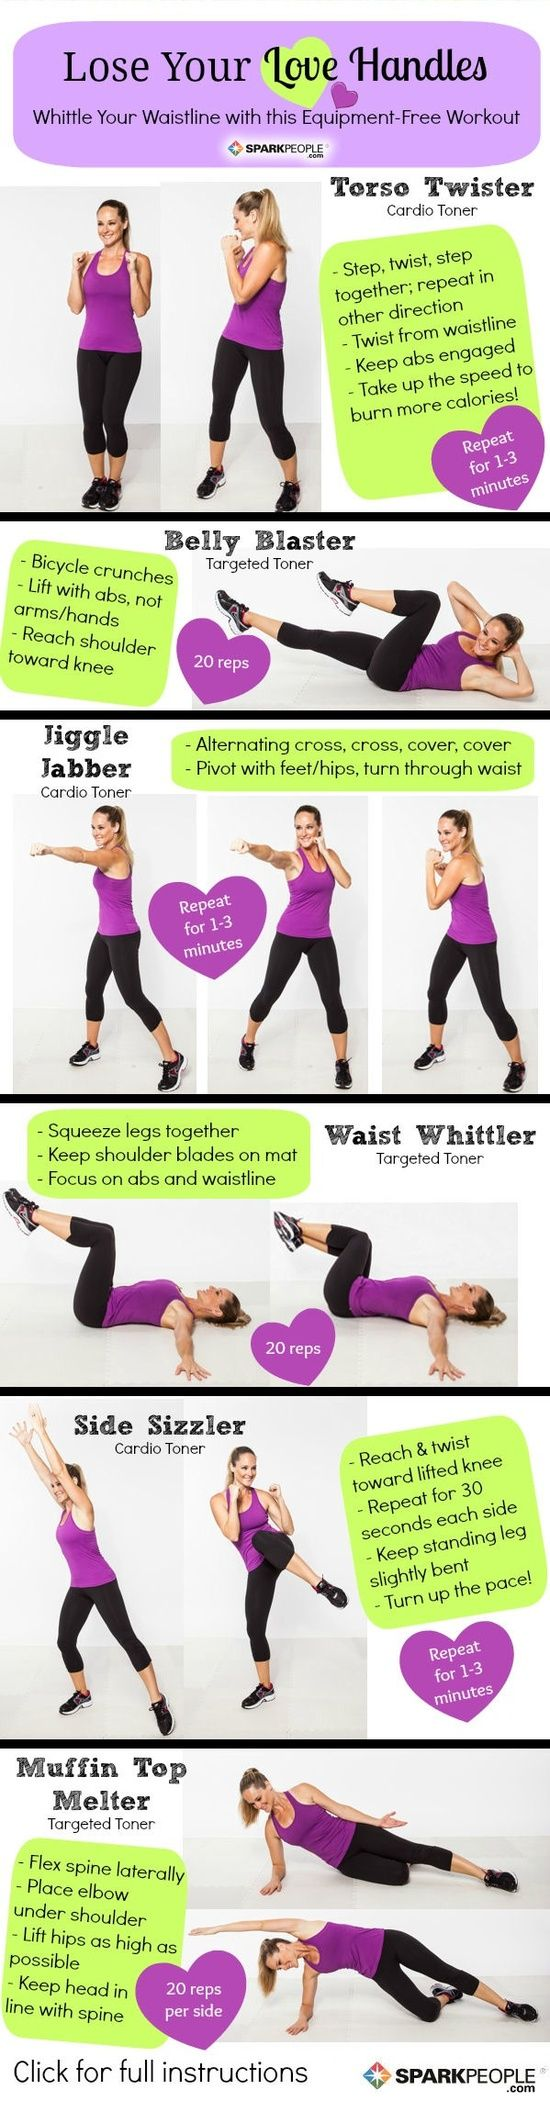 Muffin top workout!